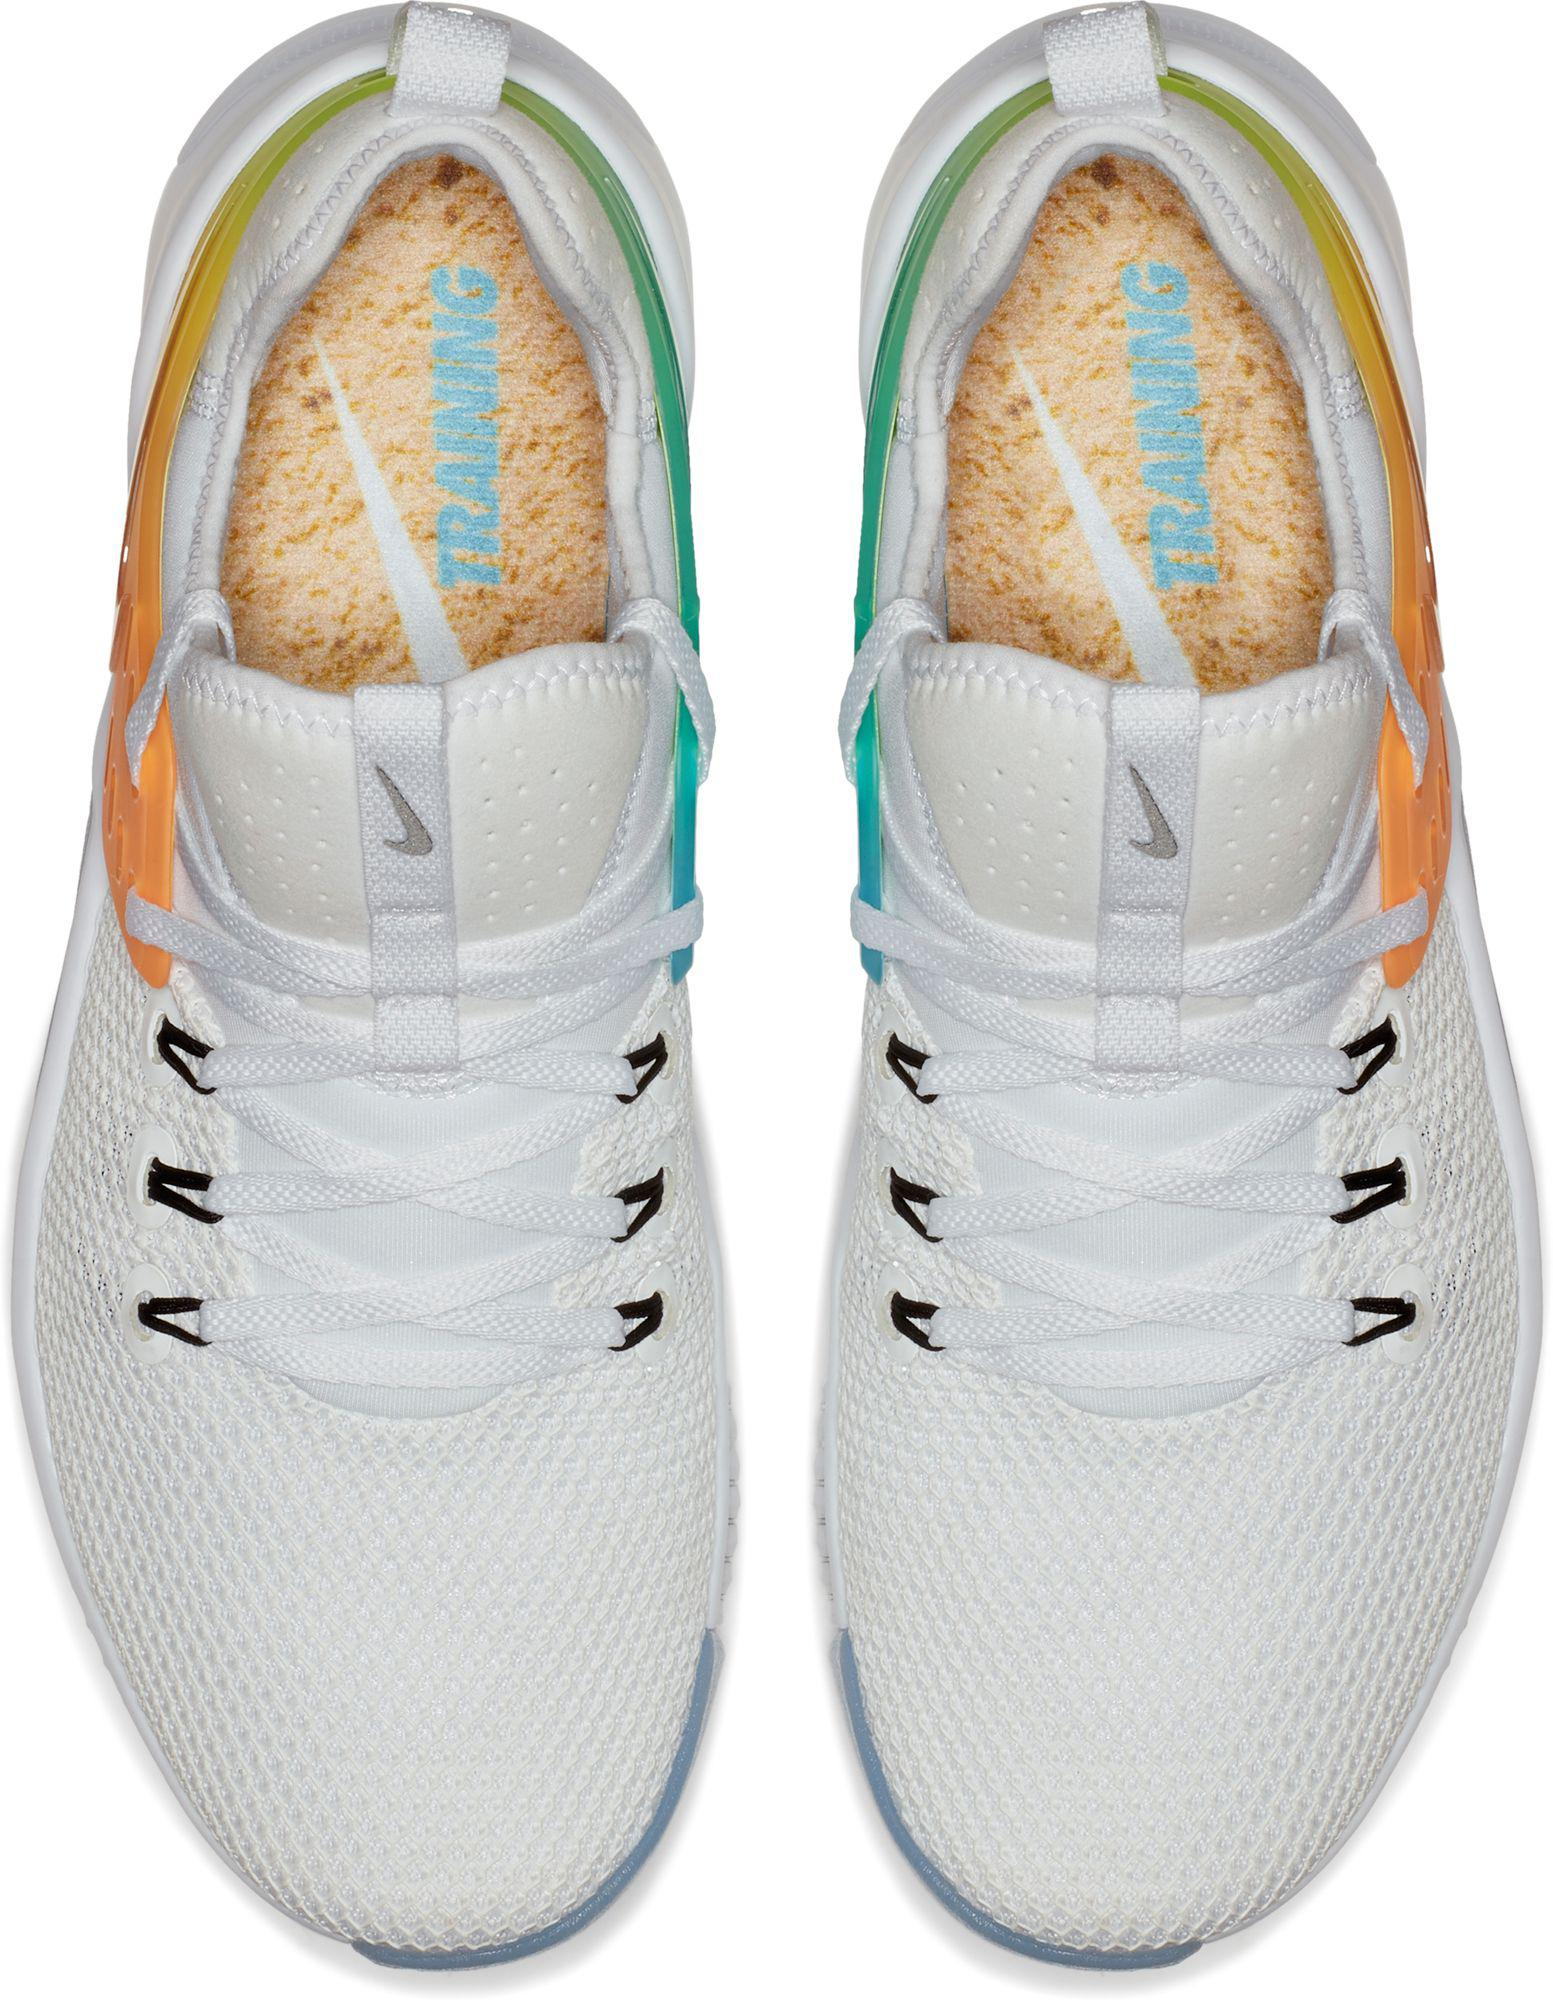 52f8b2921f0 Nike - Multicolor Free X Metcon Training Shoes for Men - Lyst